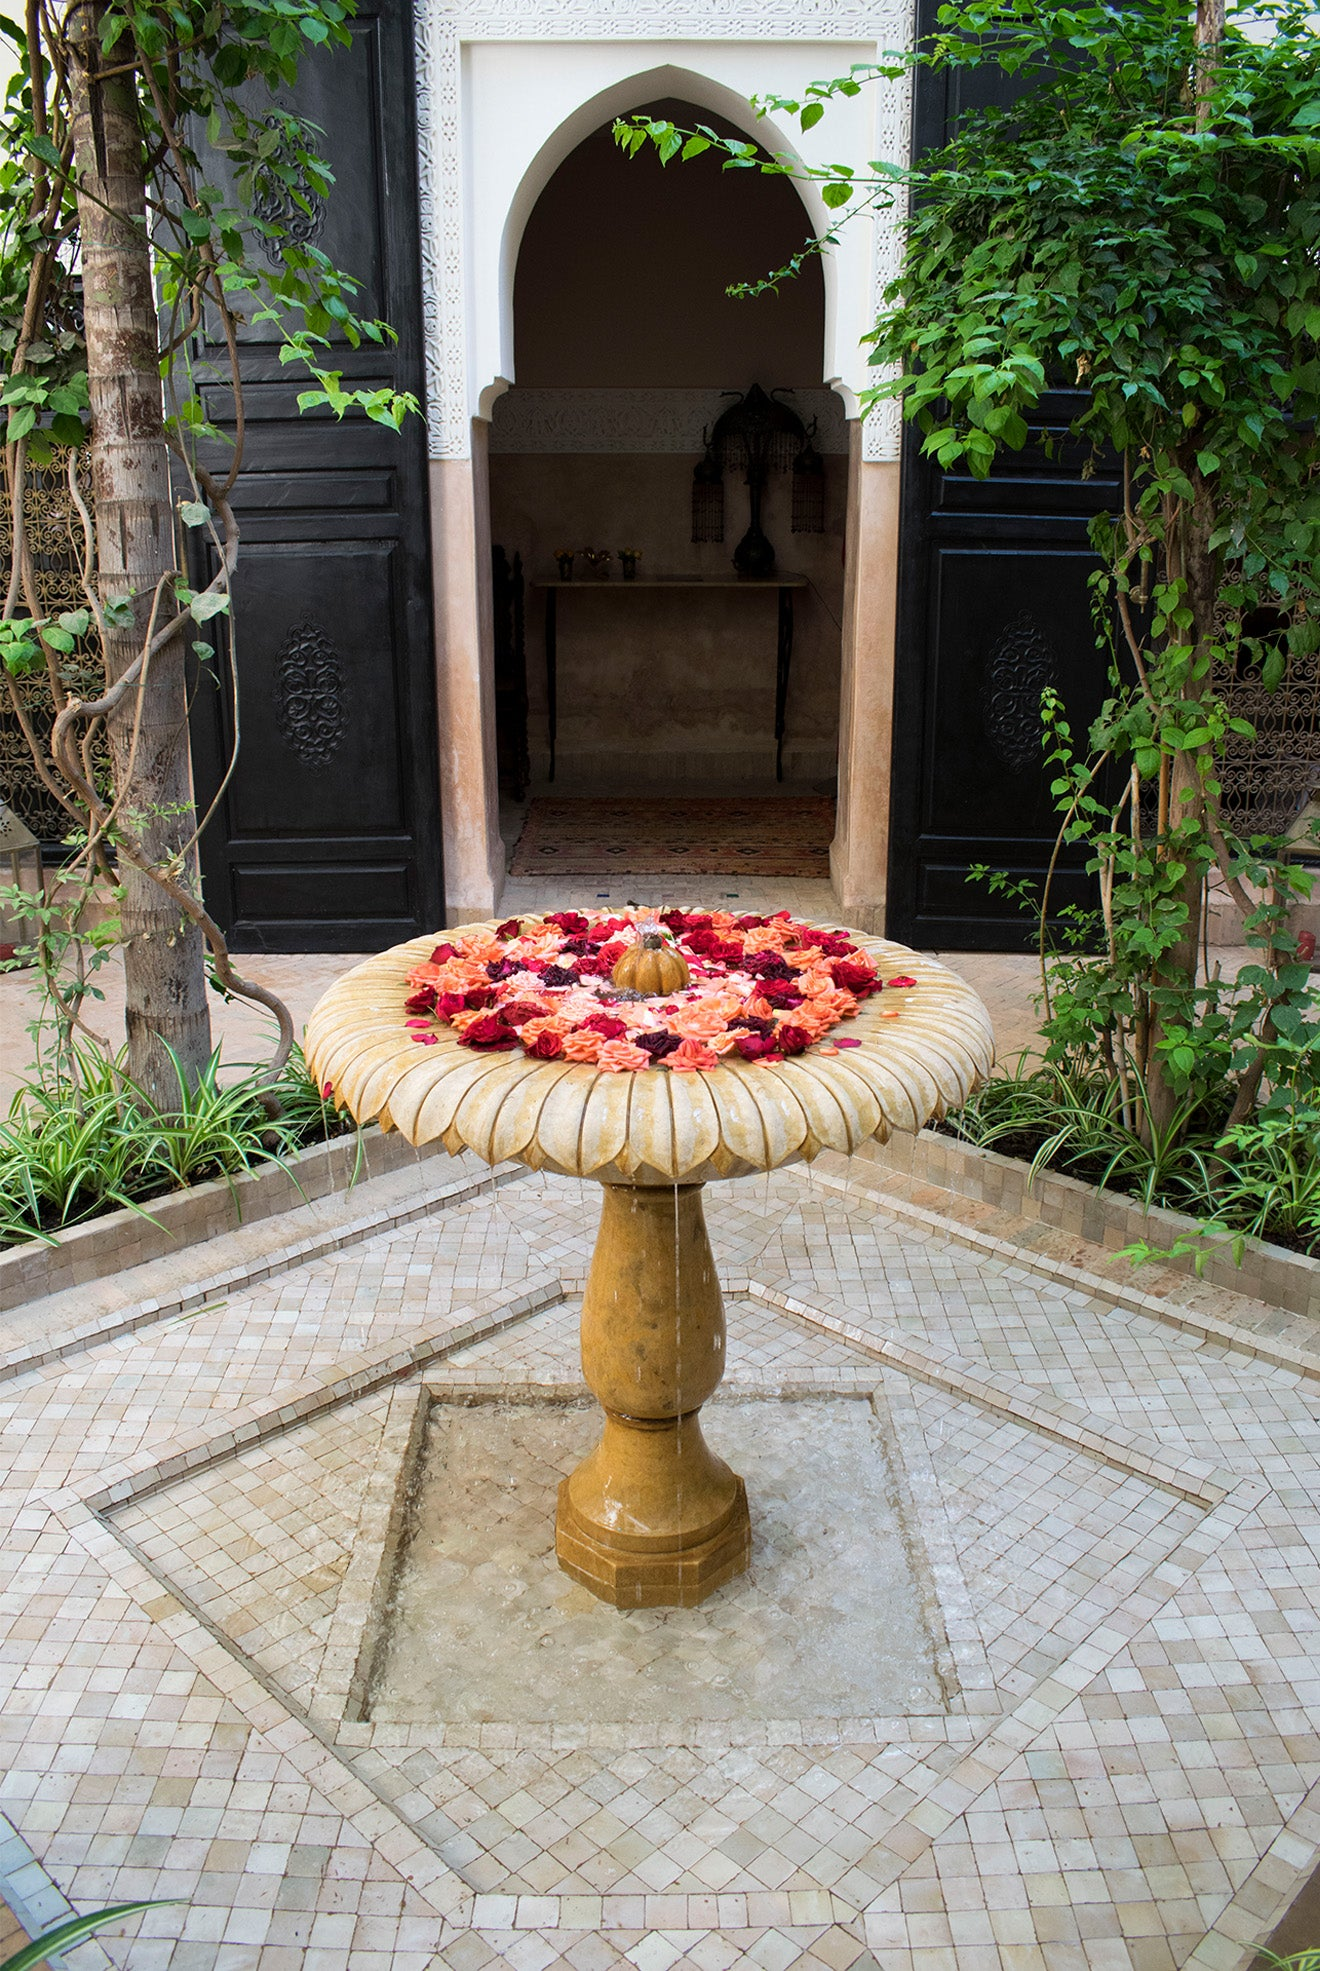 Moroccan fountain filled with red roses Dar Jaguar Marrakech